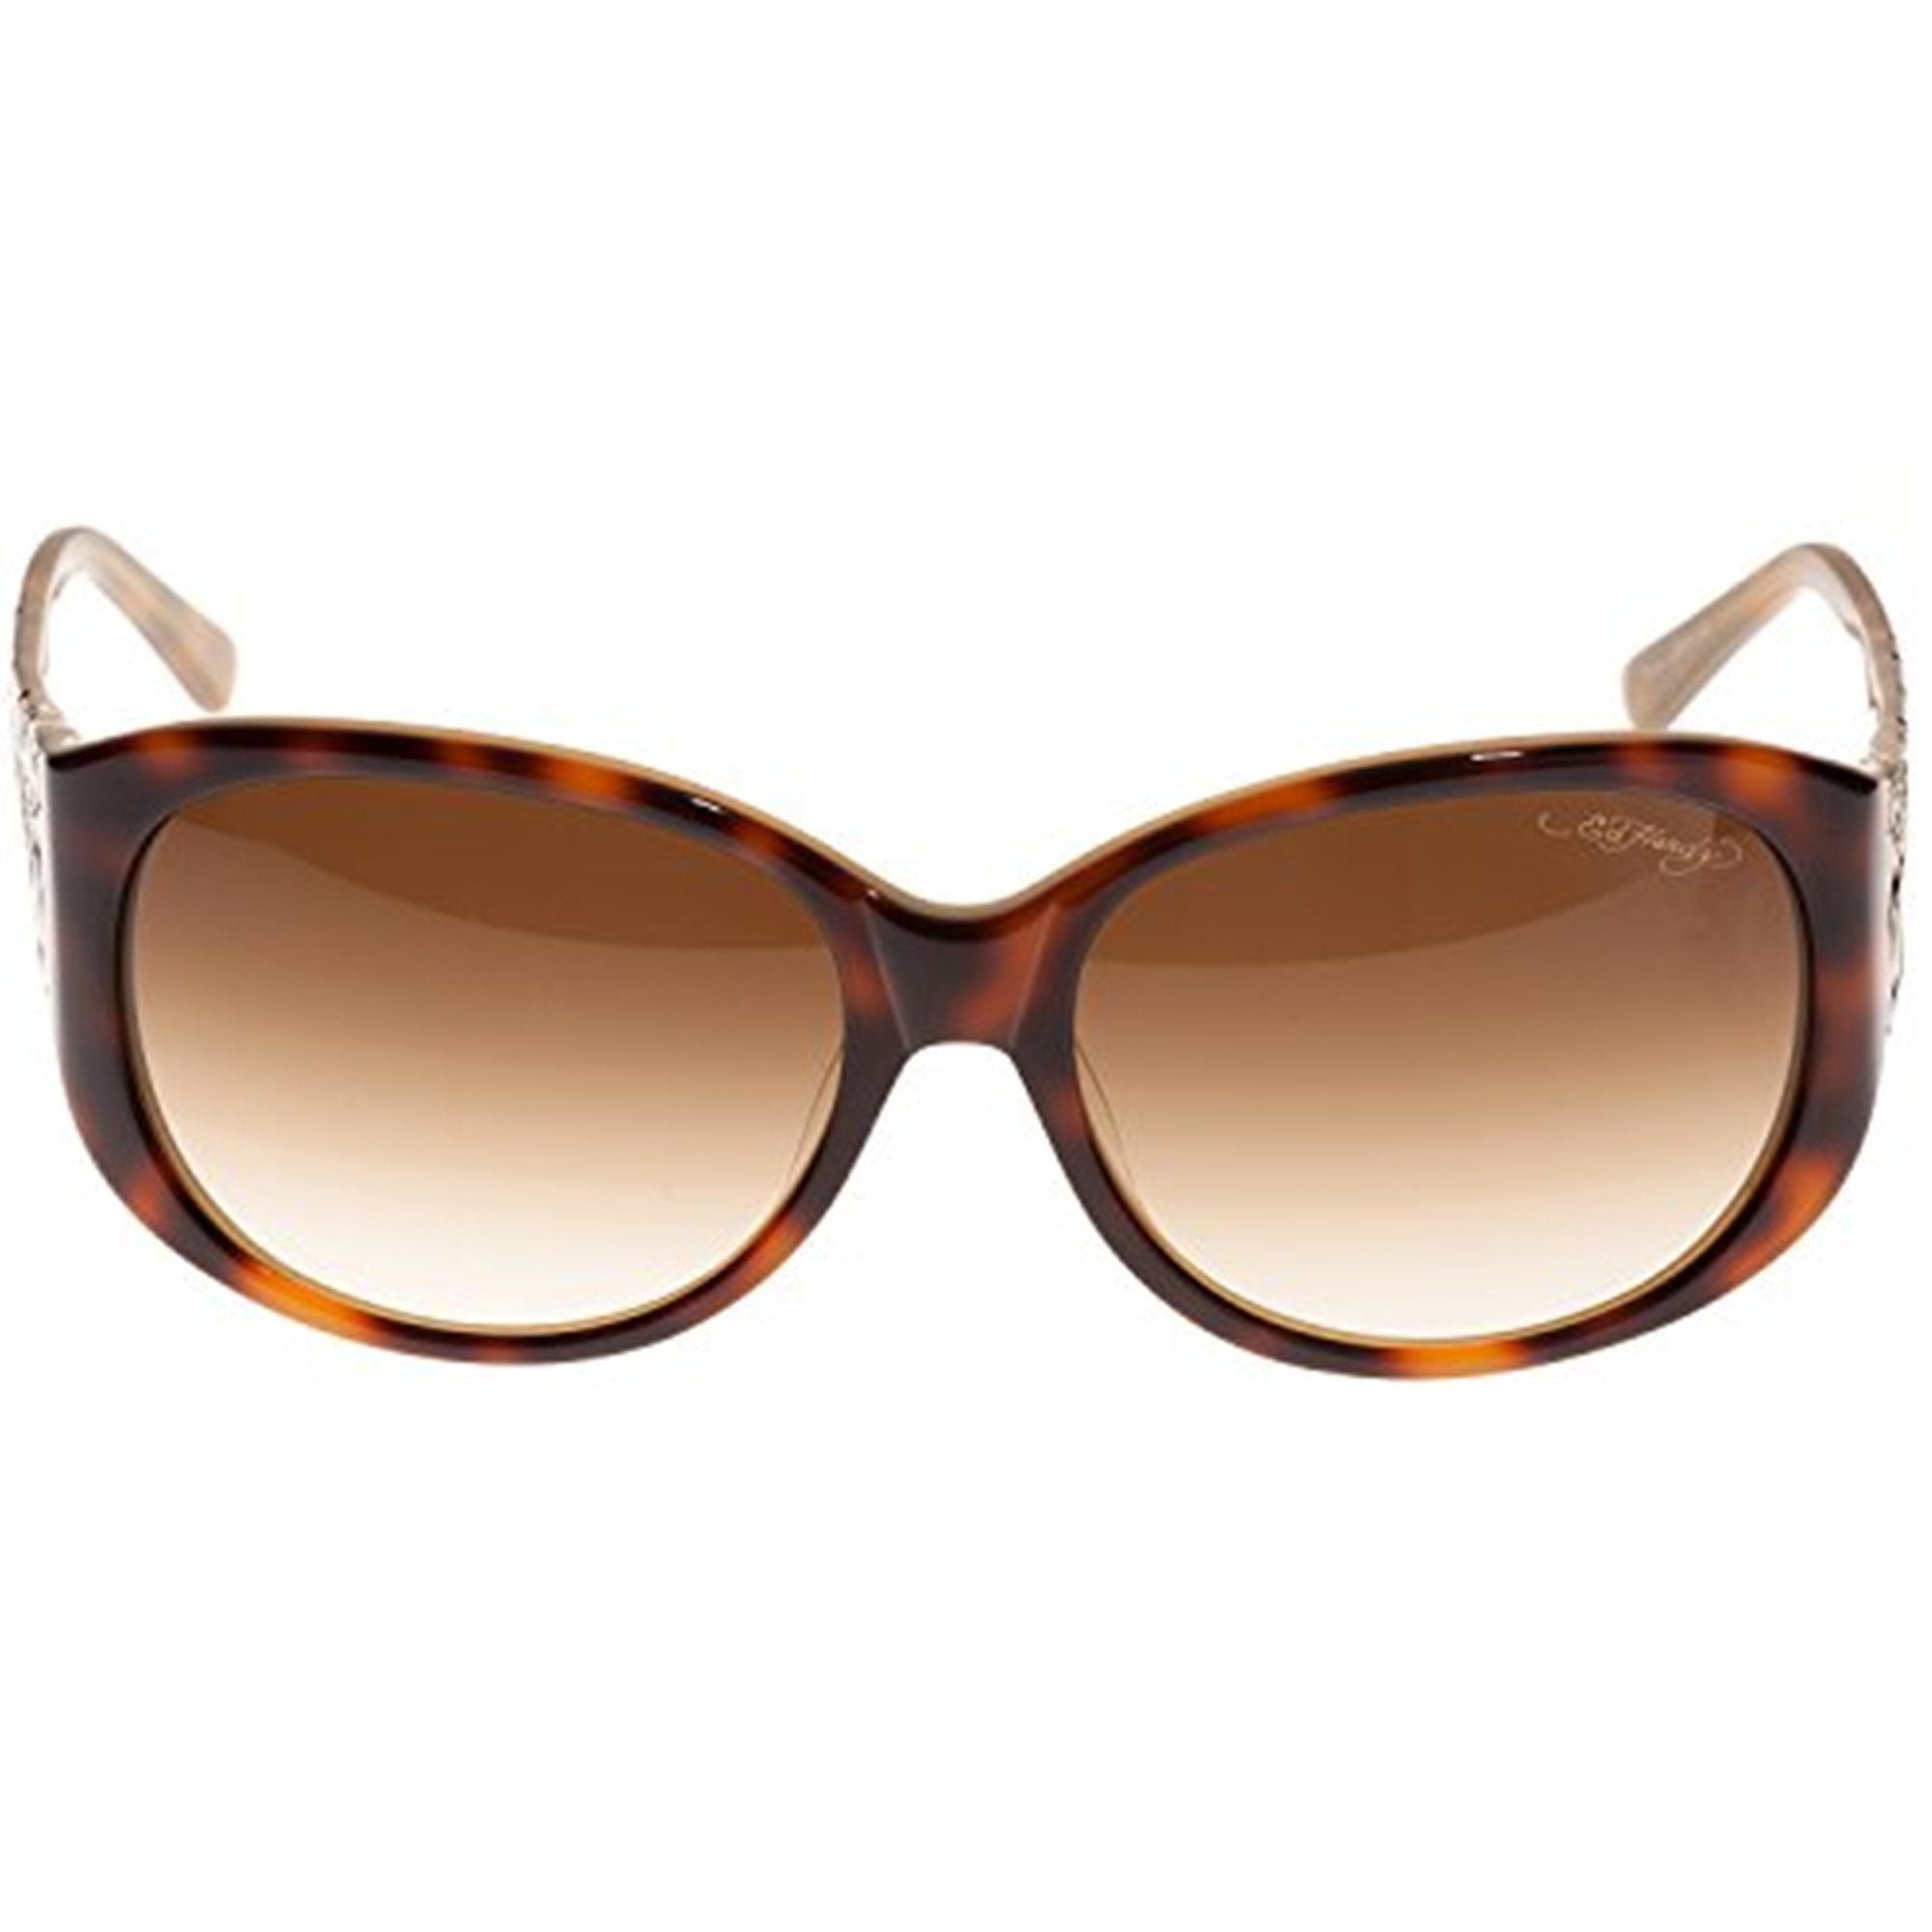 10c063890c Shop Ed Hardy Big Dragon Tortoise Brown Brown Gradient 58 16 135 Sunglasses  - Free Shipping Today - Overstock.com - 11534689